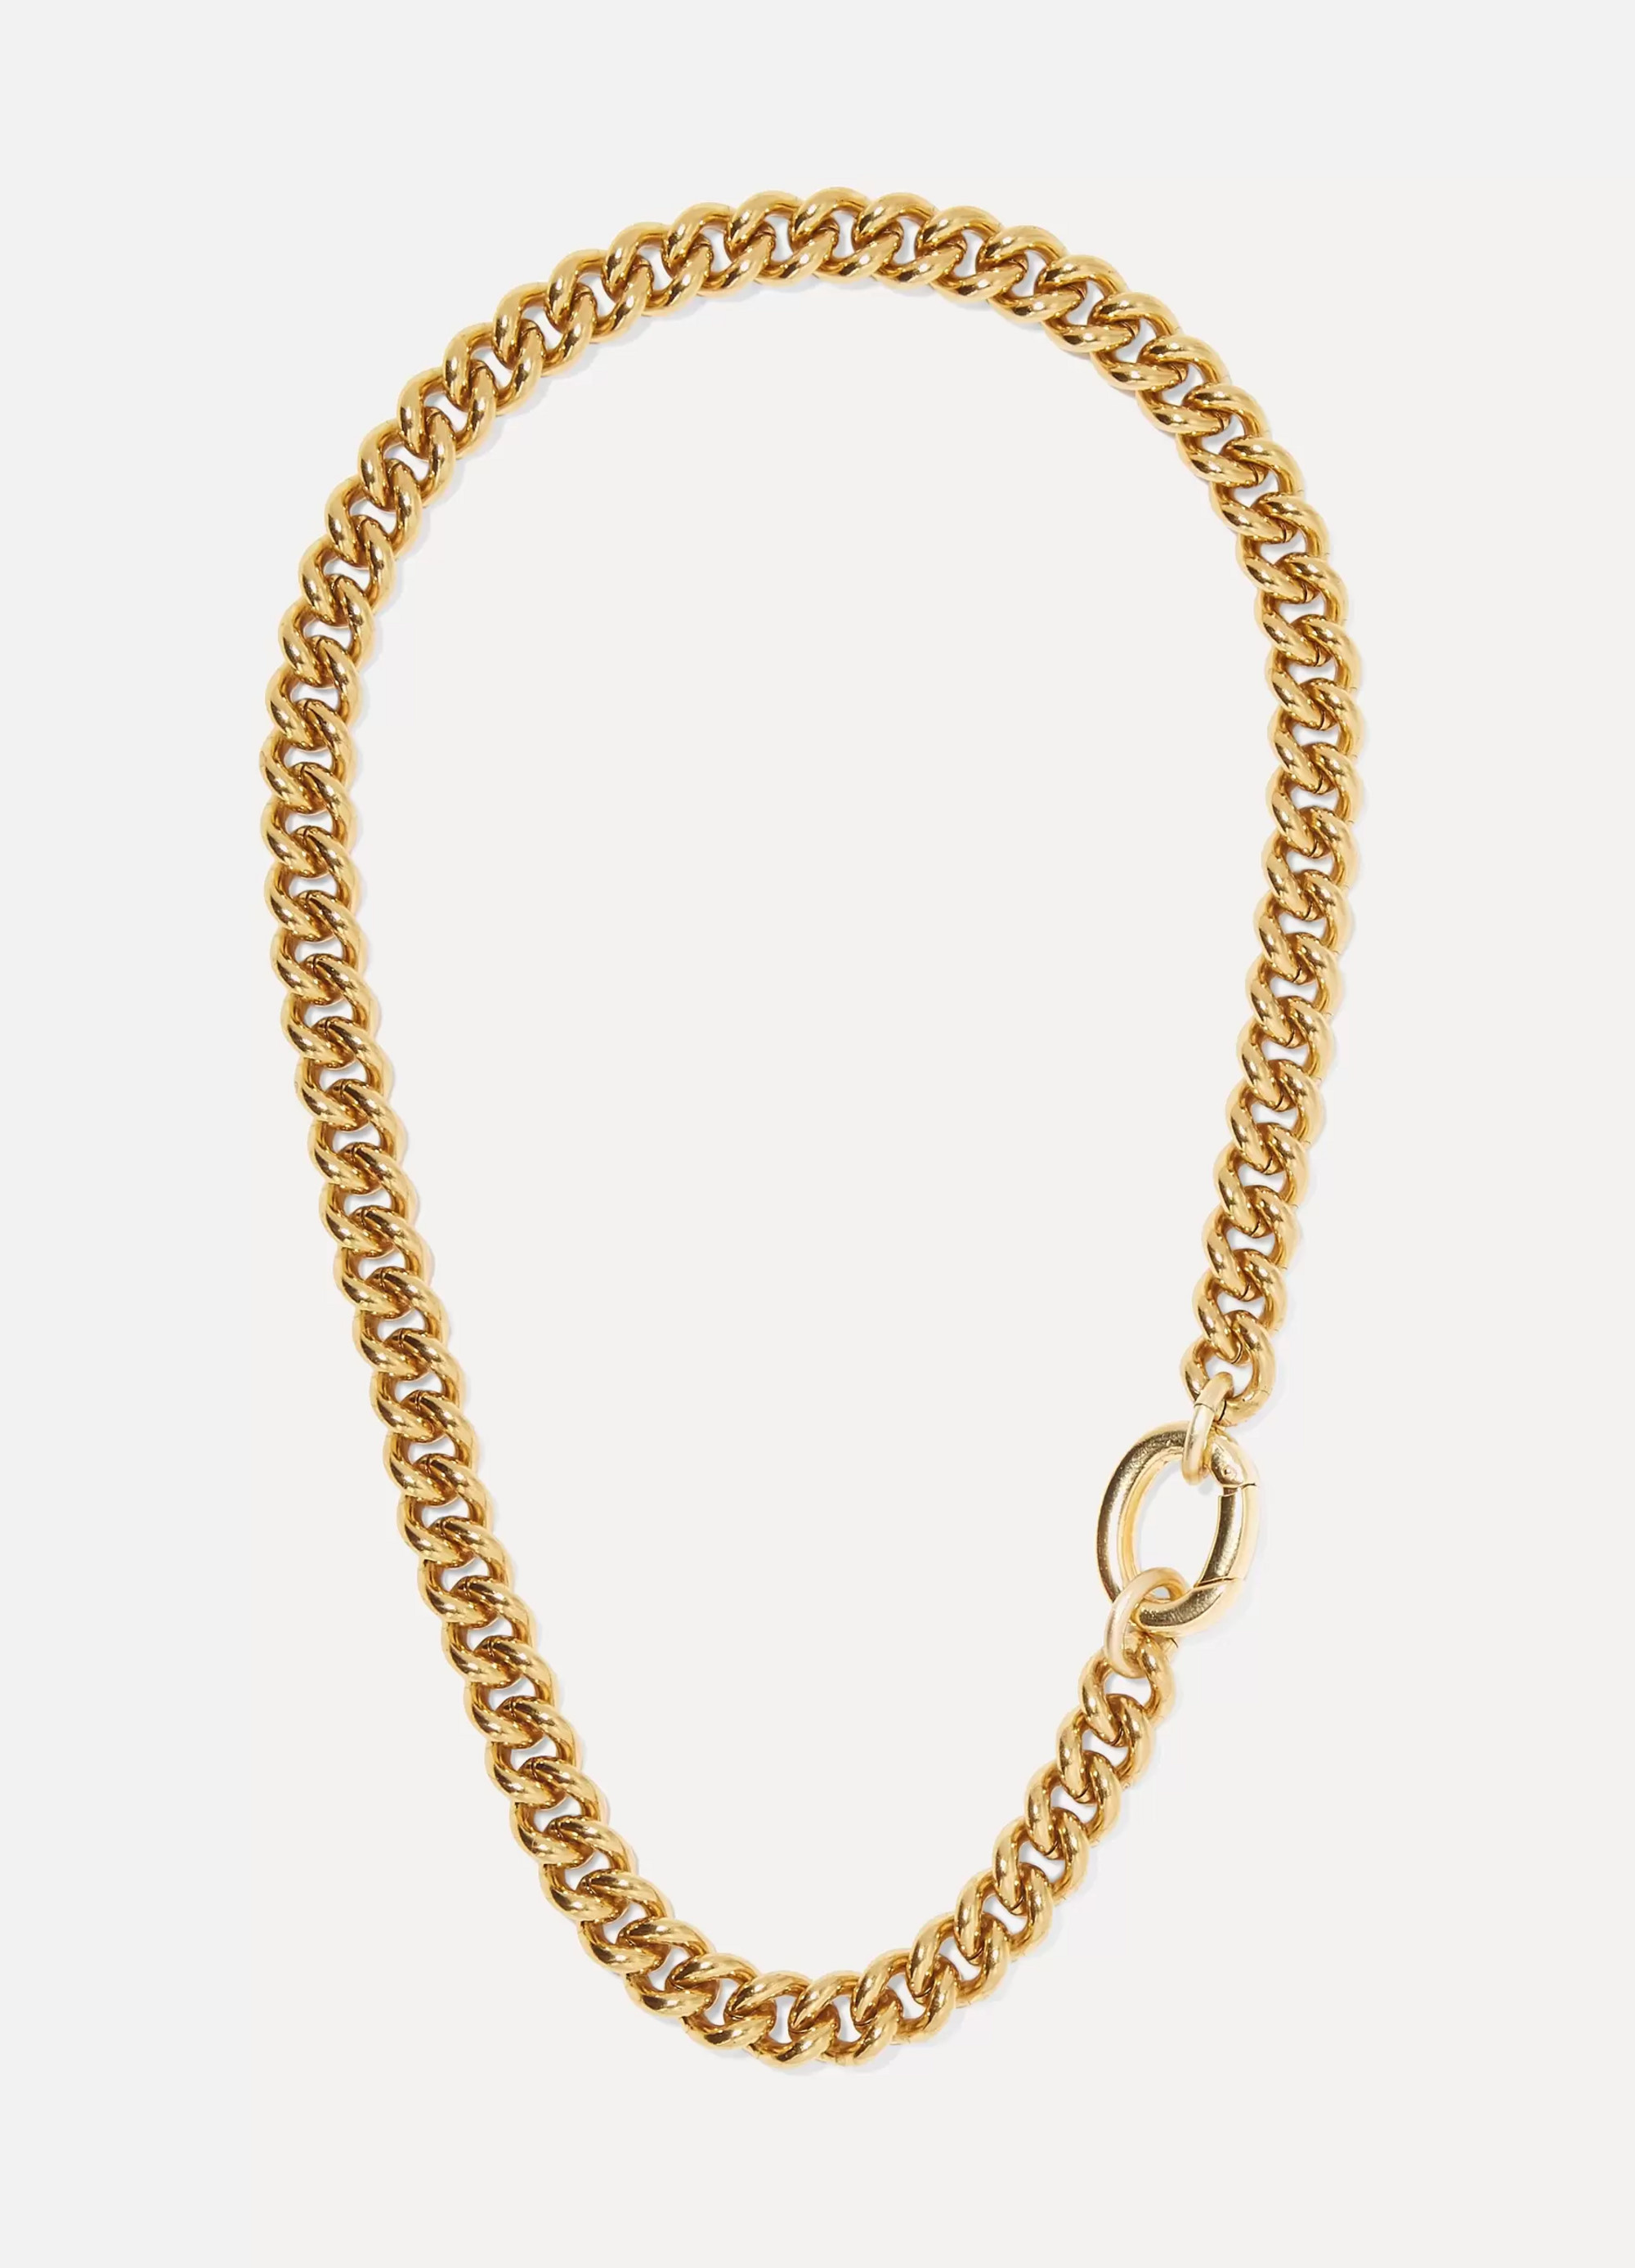 Laura Lombardi Presa gold-tone necklace